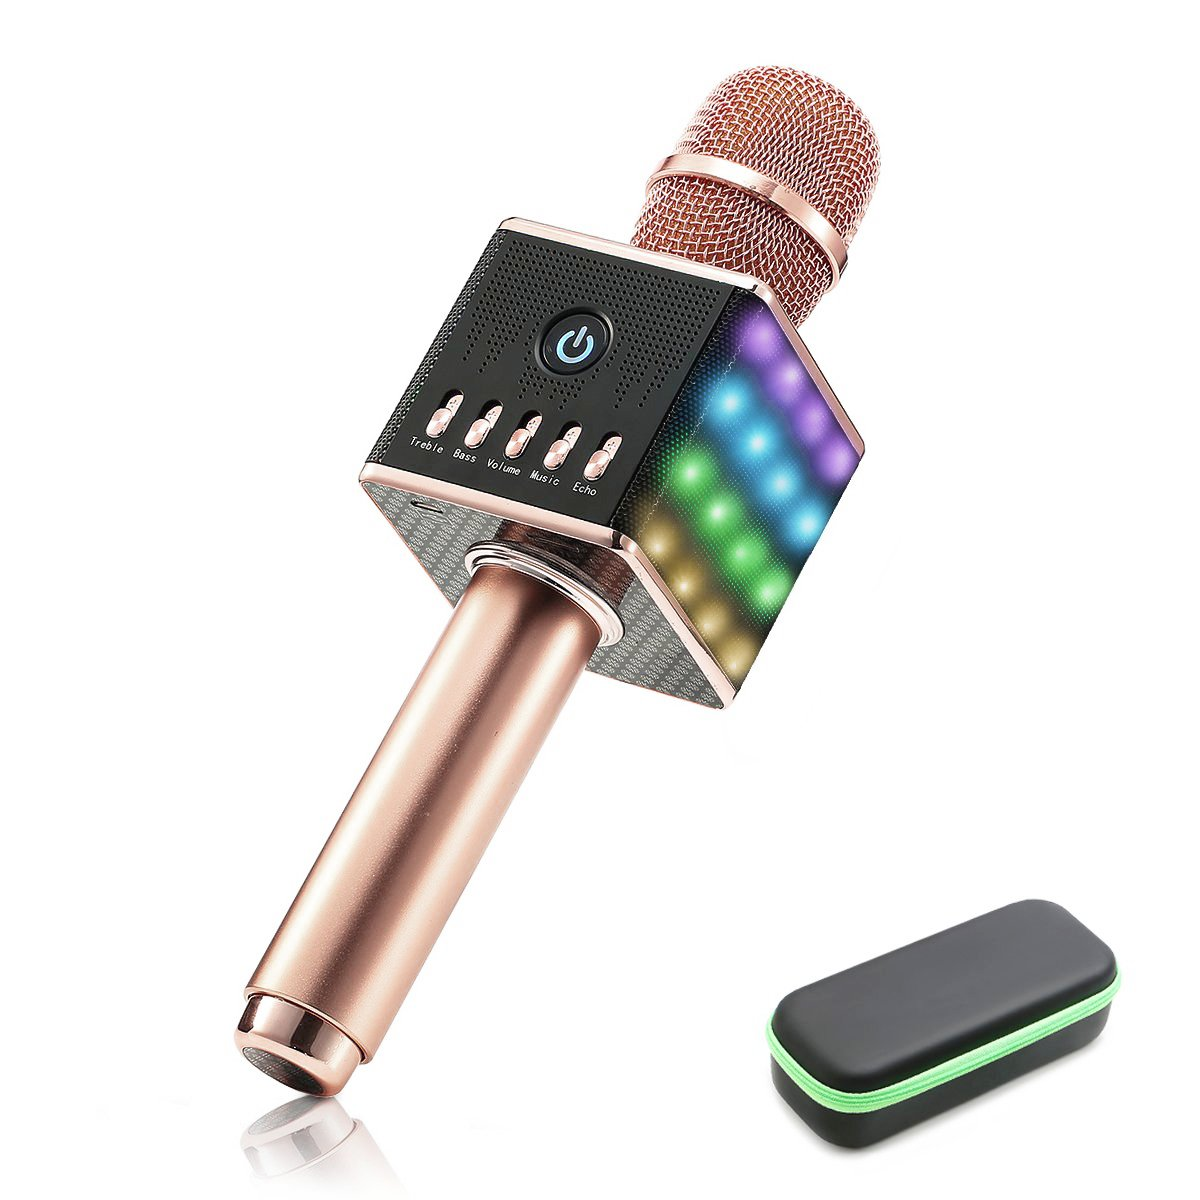 LED Wireless Karaoke Microphone - NASUM H8 Mic Built in Bluetooth Speaker and Handheld Cellphone Karaoke Player,2600mAh battery,Karaoke MIC Machine for KTV with Carry Case(100% Protection),Rose